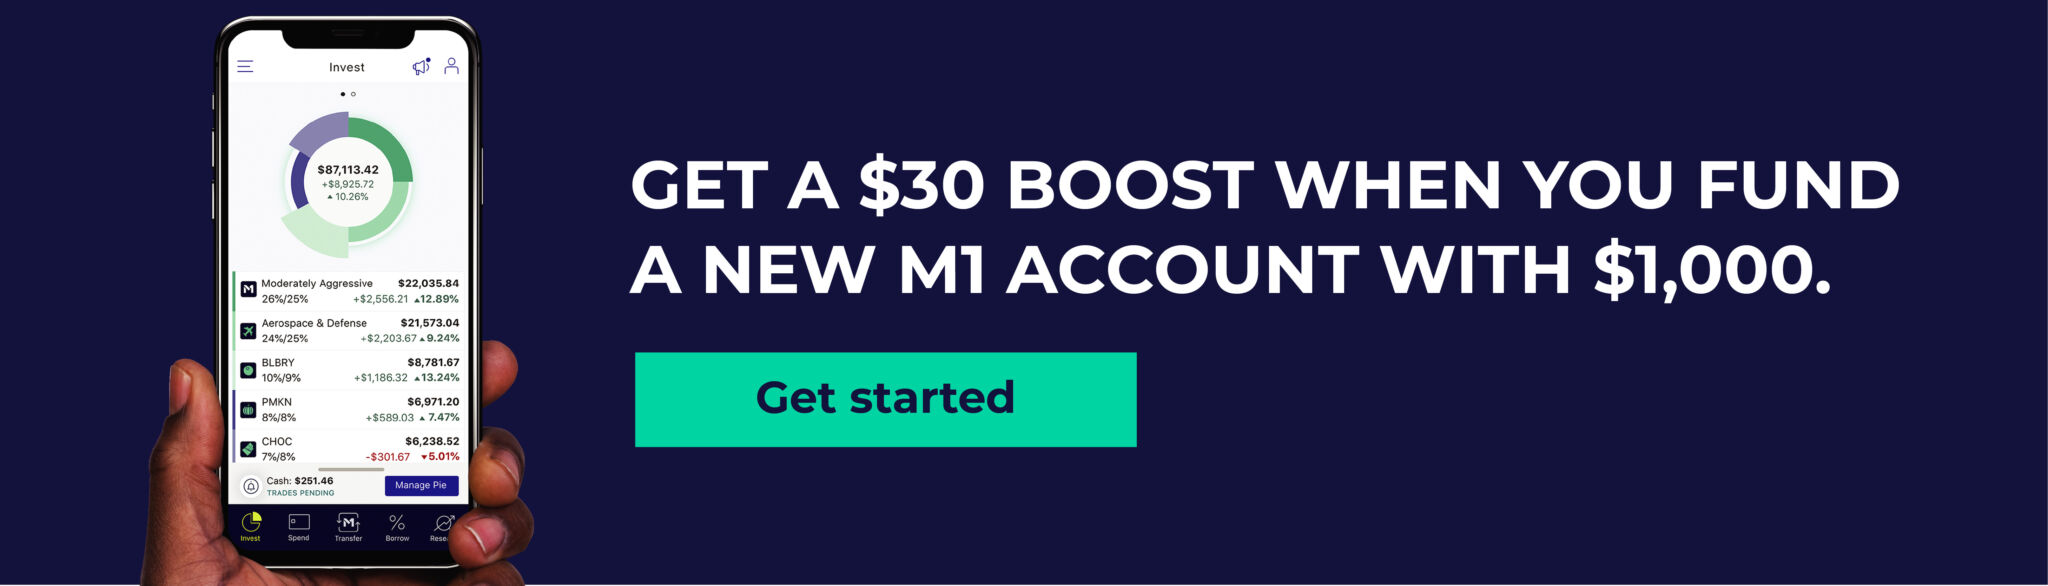 Get a $30 boost when you fund a new M1 account with $1,000.